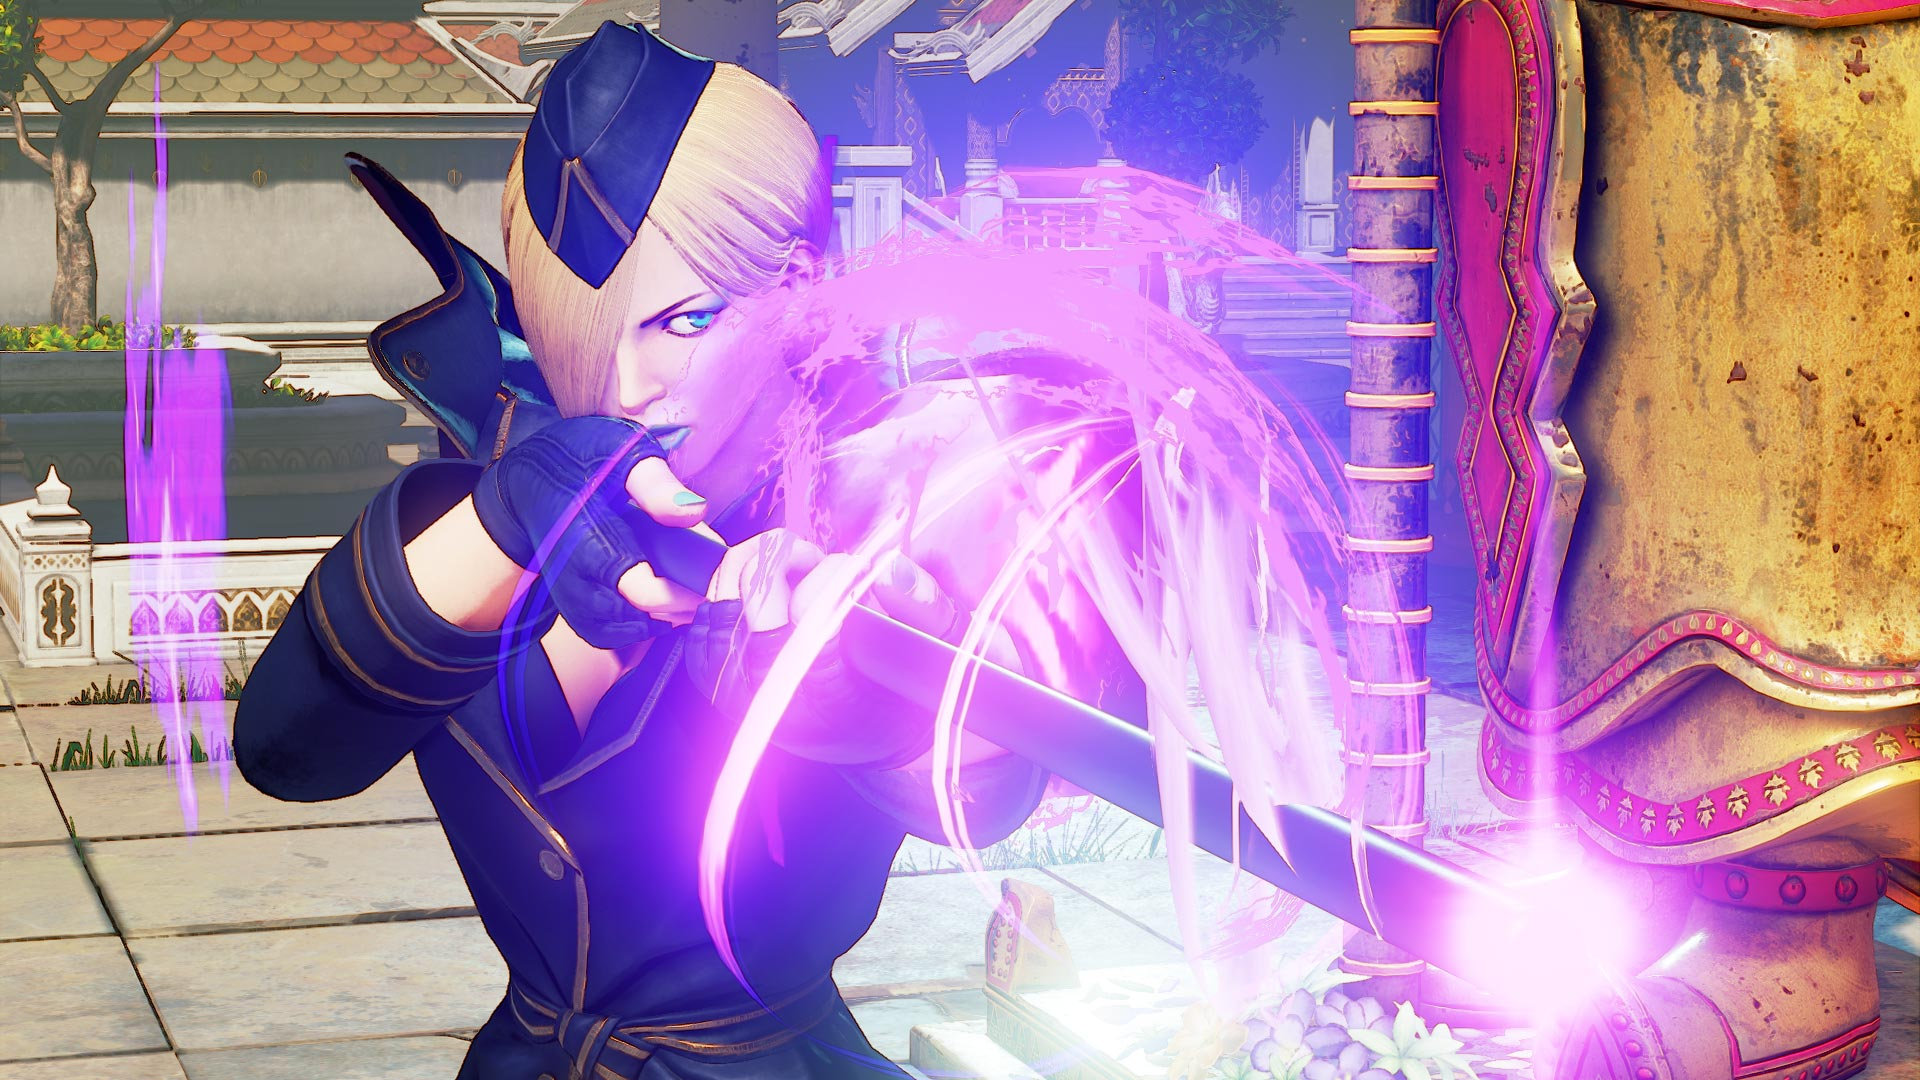 Falke in Street Fighter 5: Arcade Edition 3 out of 15 image gallery